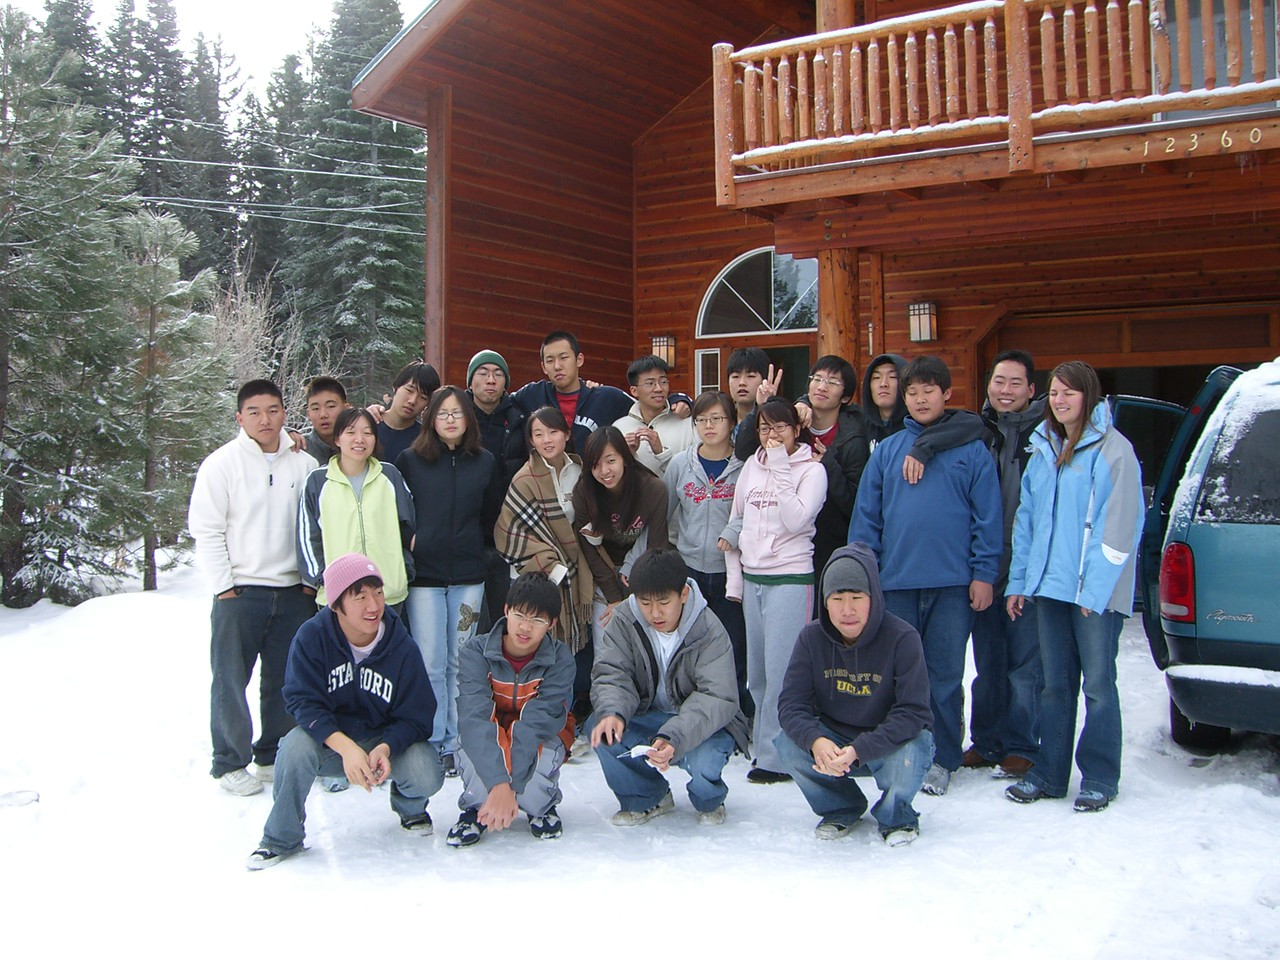 2005 12 29 Thu - End of retreat group pic 5